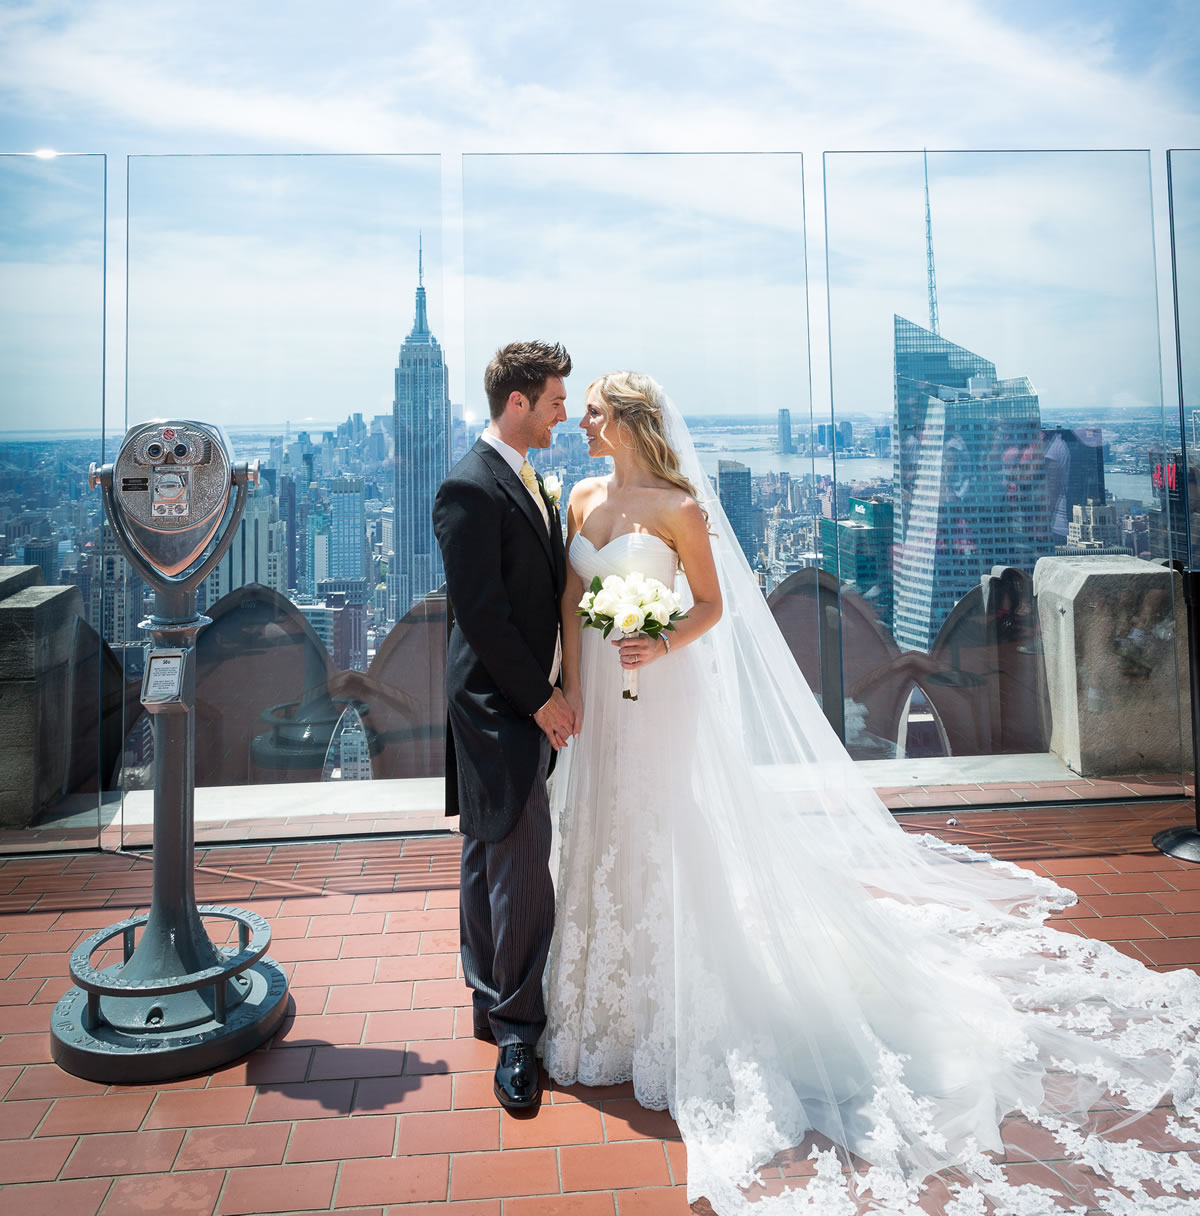 Top Of The Rock Wedding Planner, Elopements, Destination